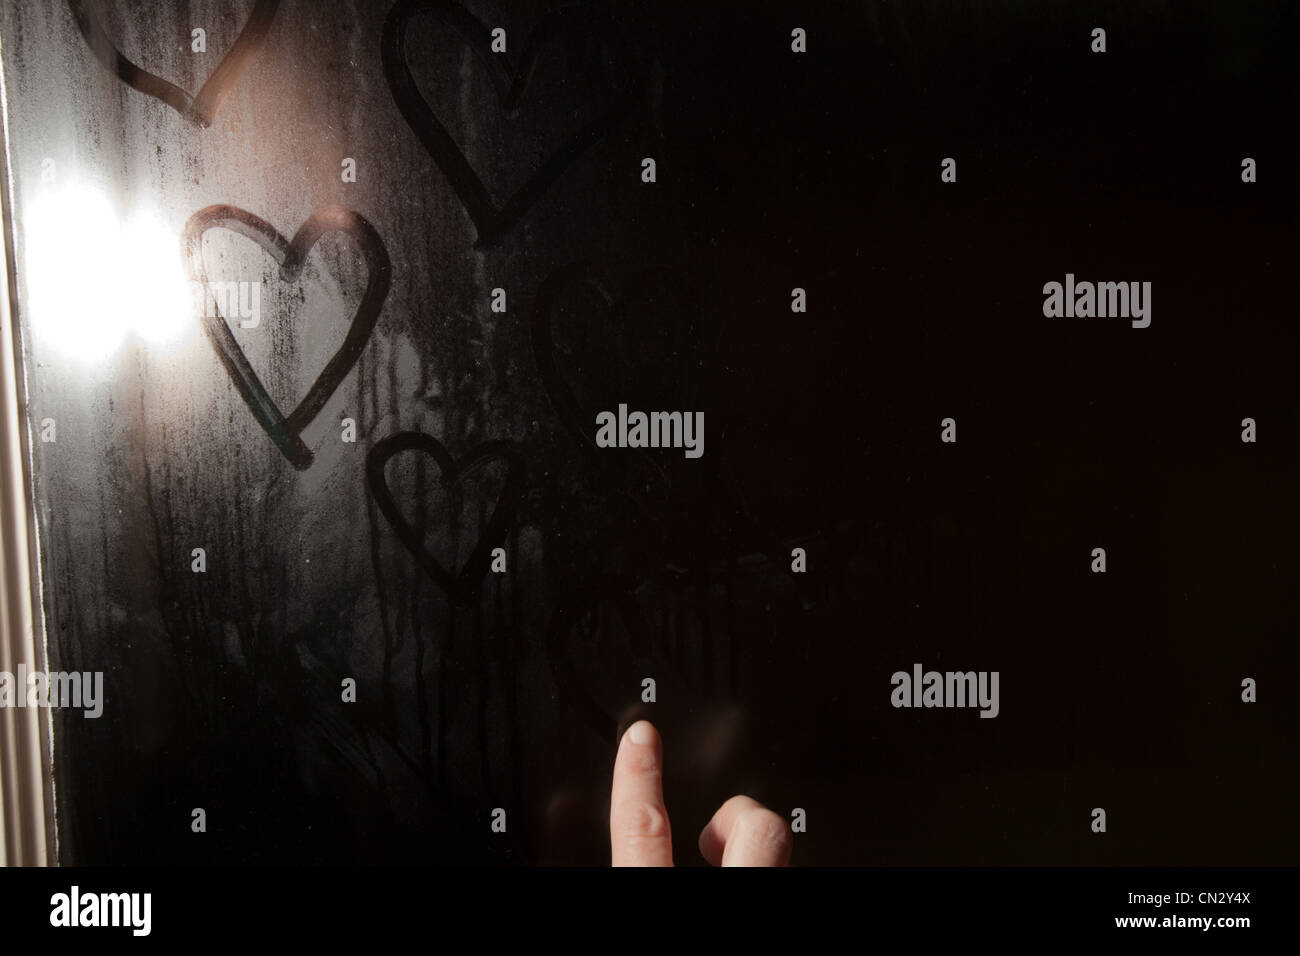 Girl drawing heart shape in condensation on window - Stock Image